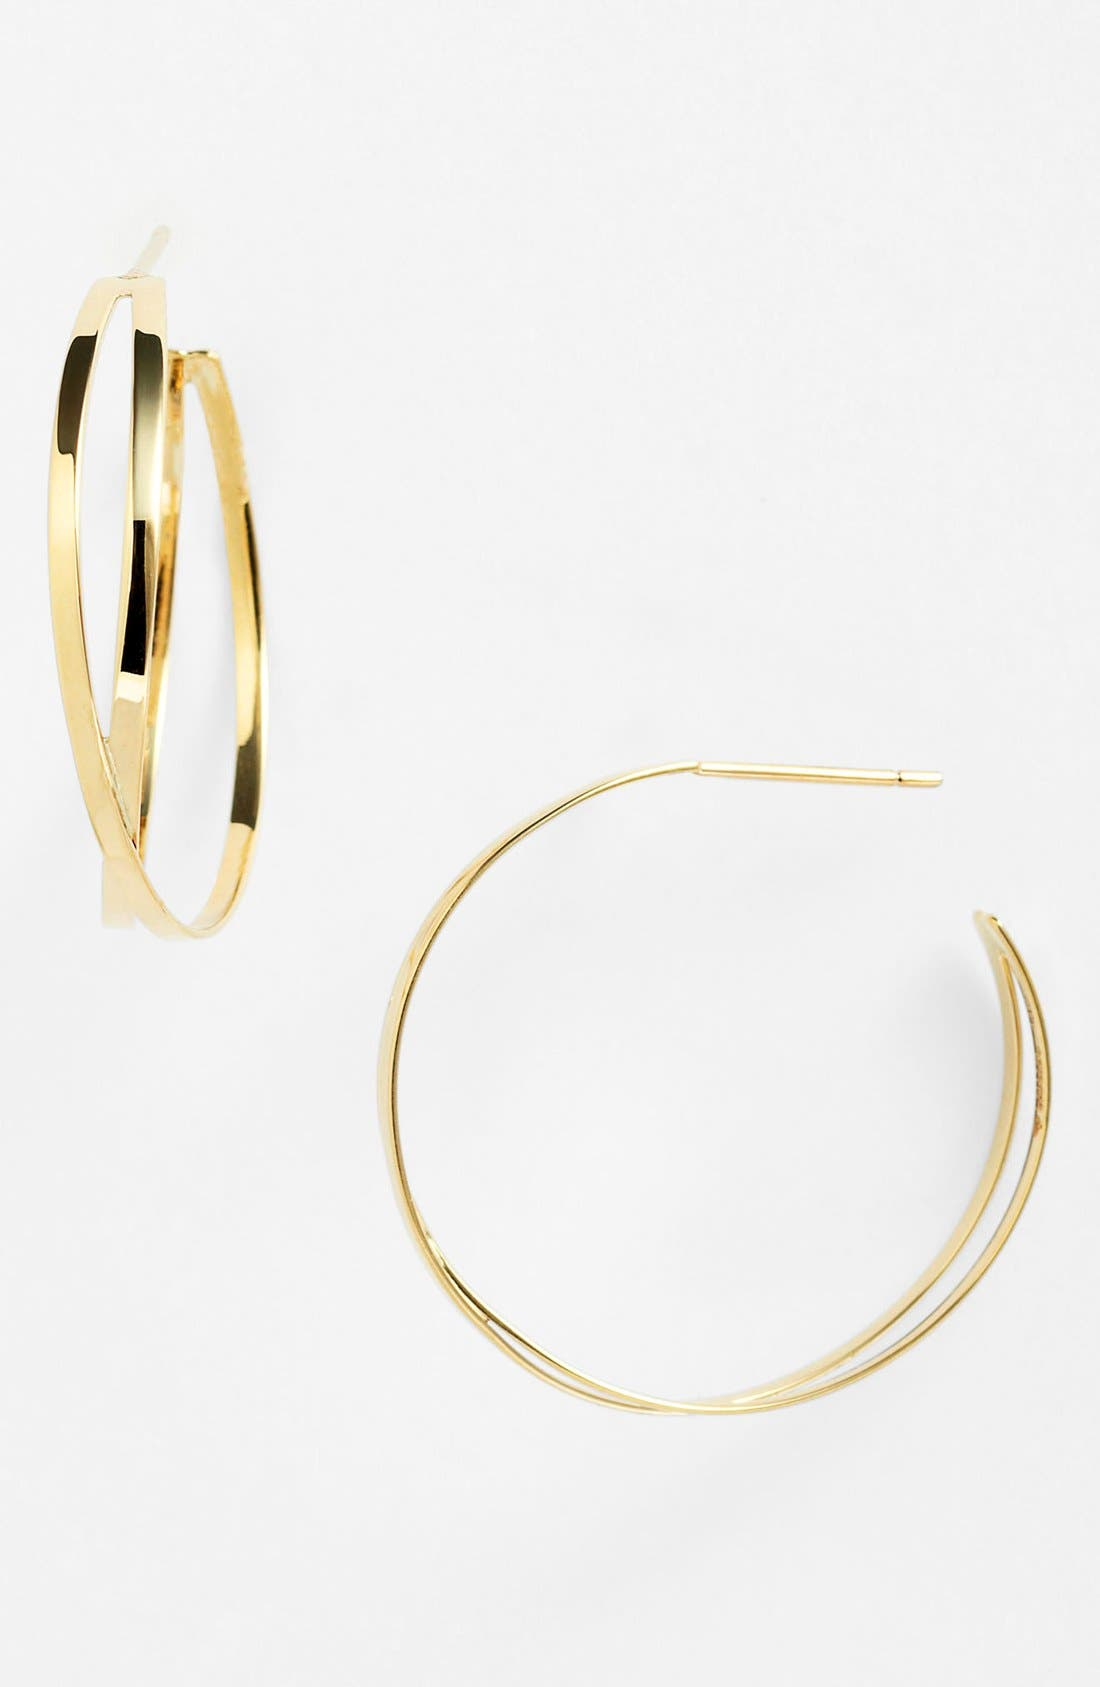 Main Image - Lana Jewelry 'White Night' Hoop Earrings